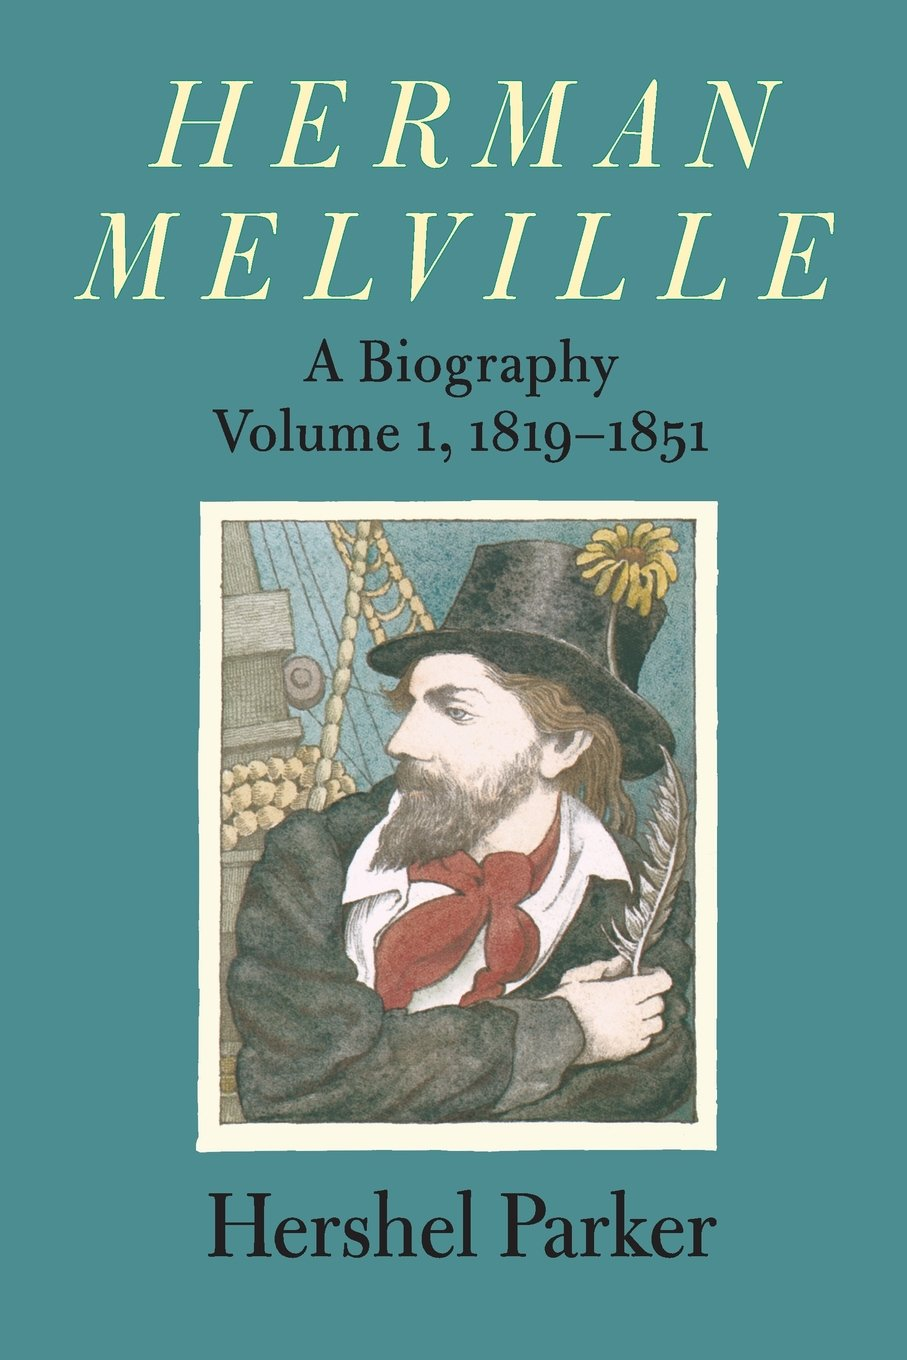 herman melville famous works